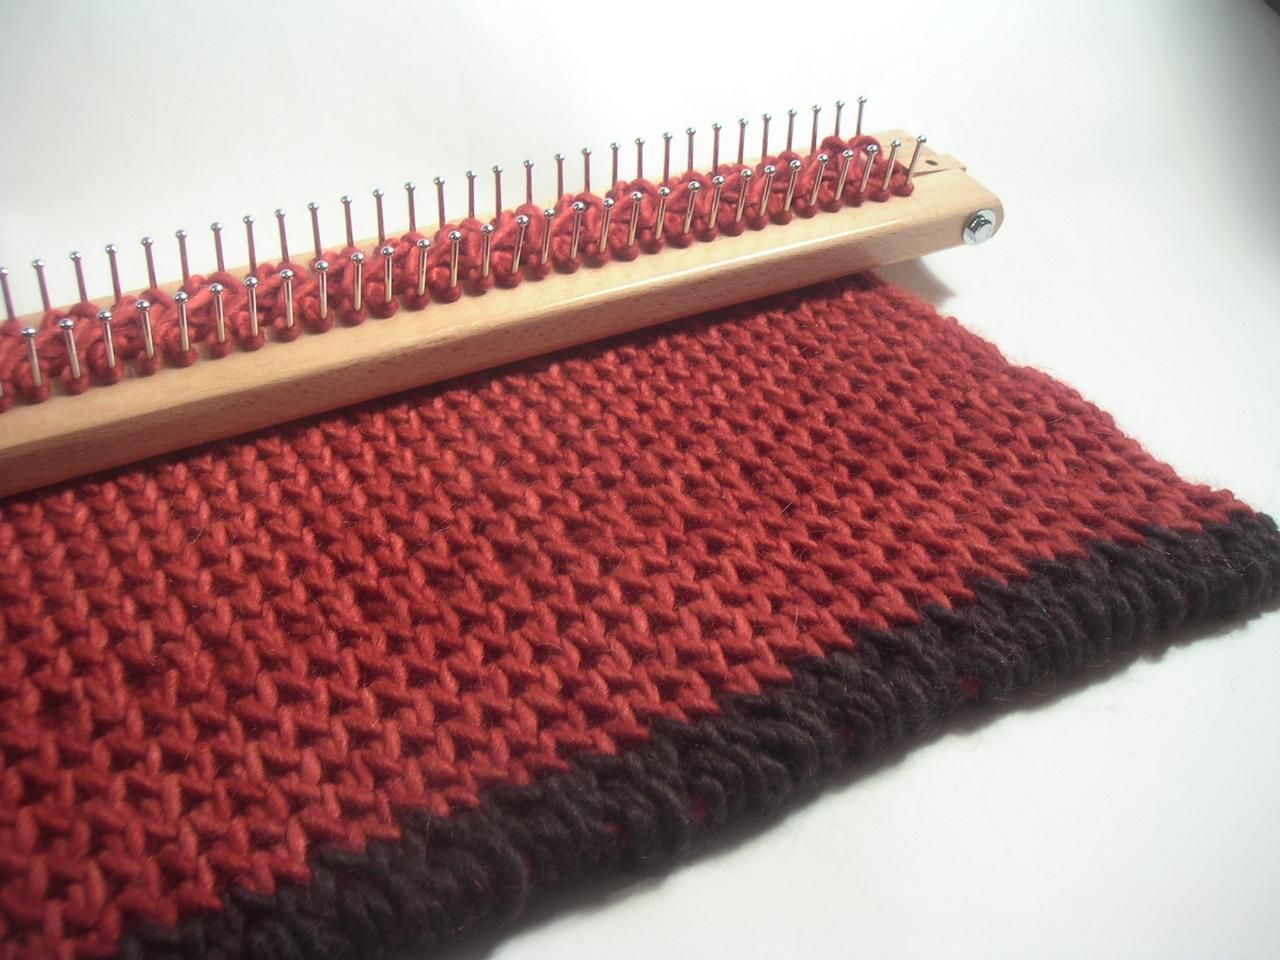 Knit Rug Pattern Free : Free Knitting Board Patterns with the new heavy duty knitting board. I will...